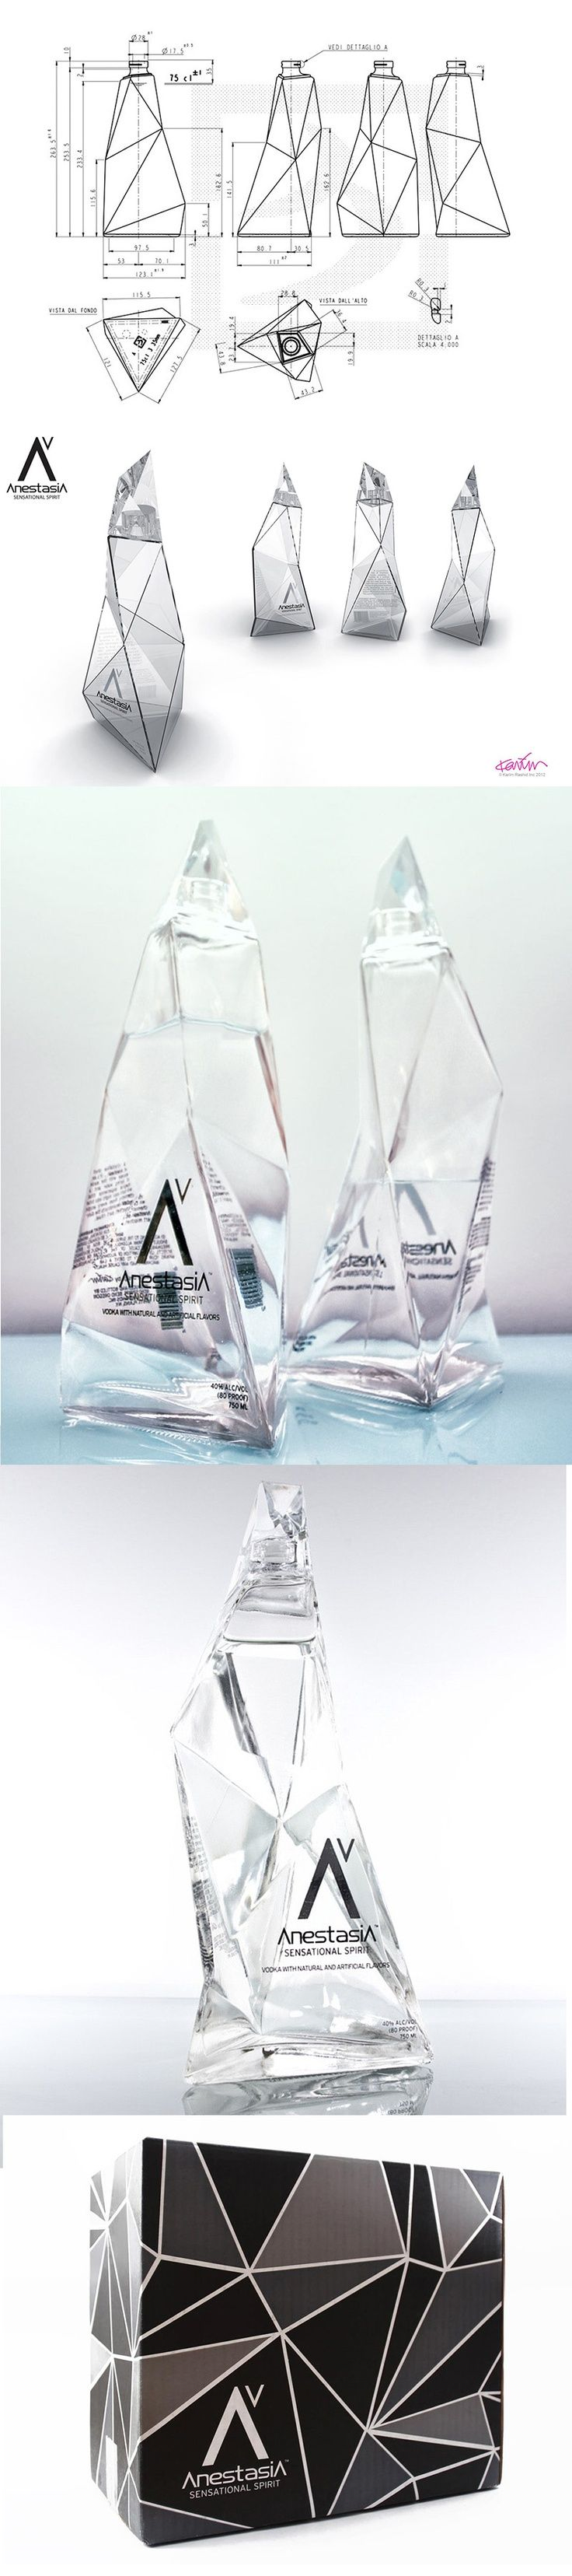 If It's Hip, It's Here: A Great Bottle Design by Karim Rashid and Fabulous Brand Imagery For One Weird Vodka: AnestasiA Sensational Spirit..